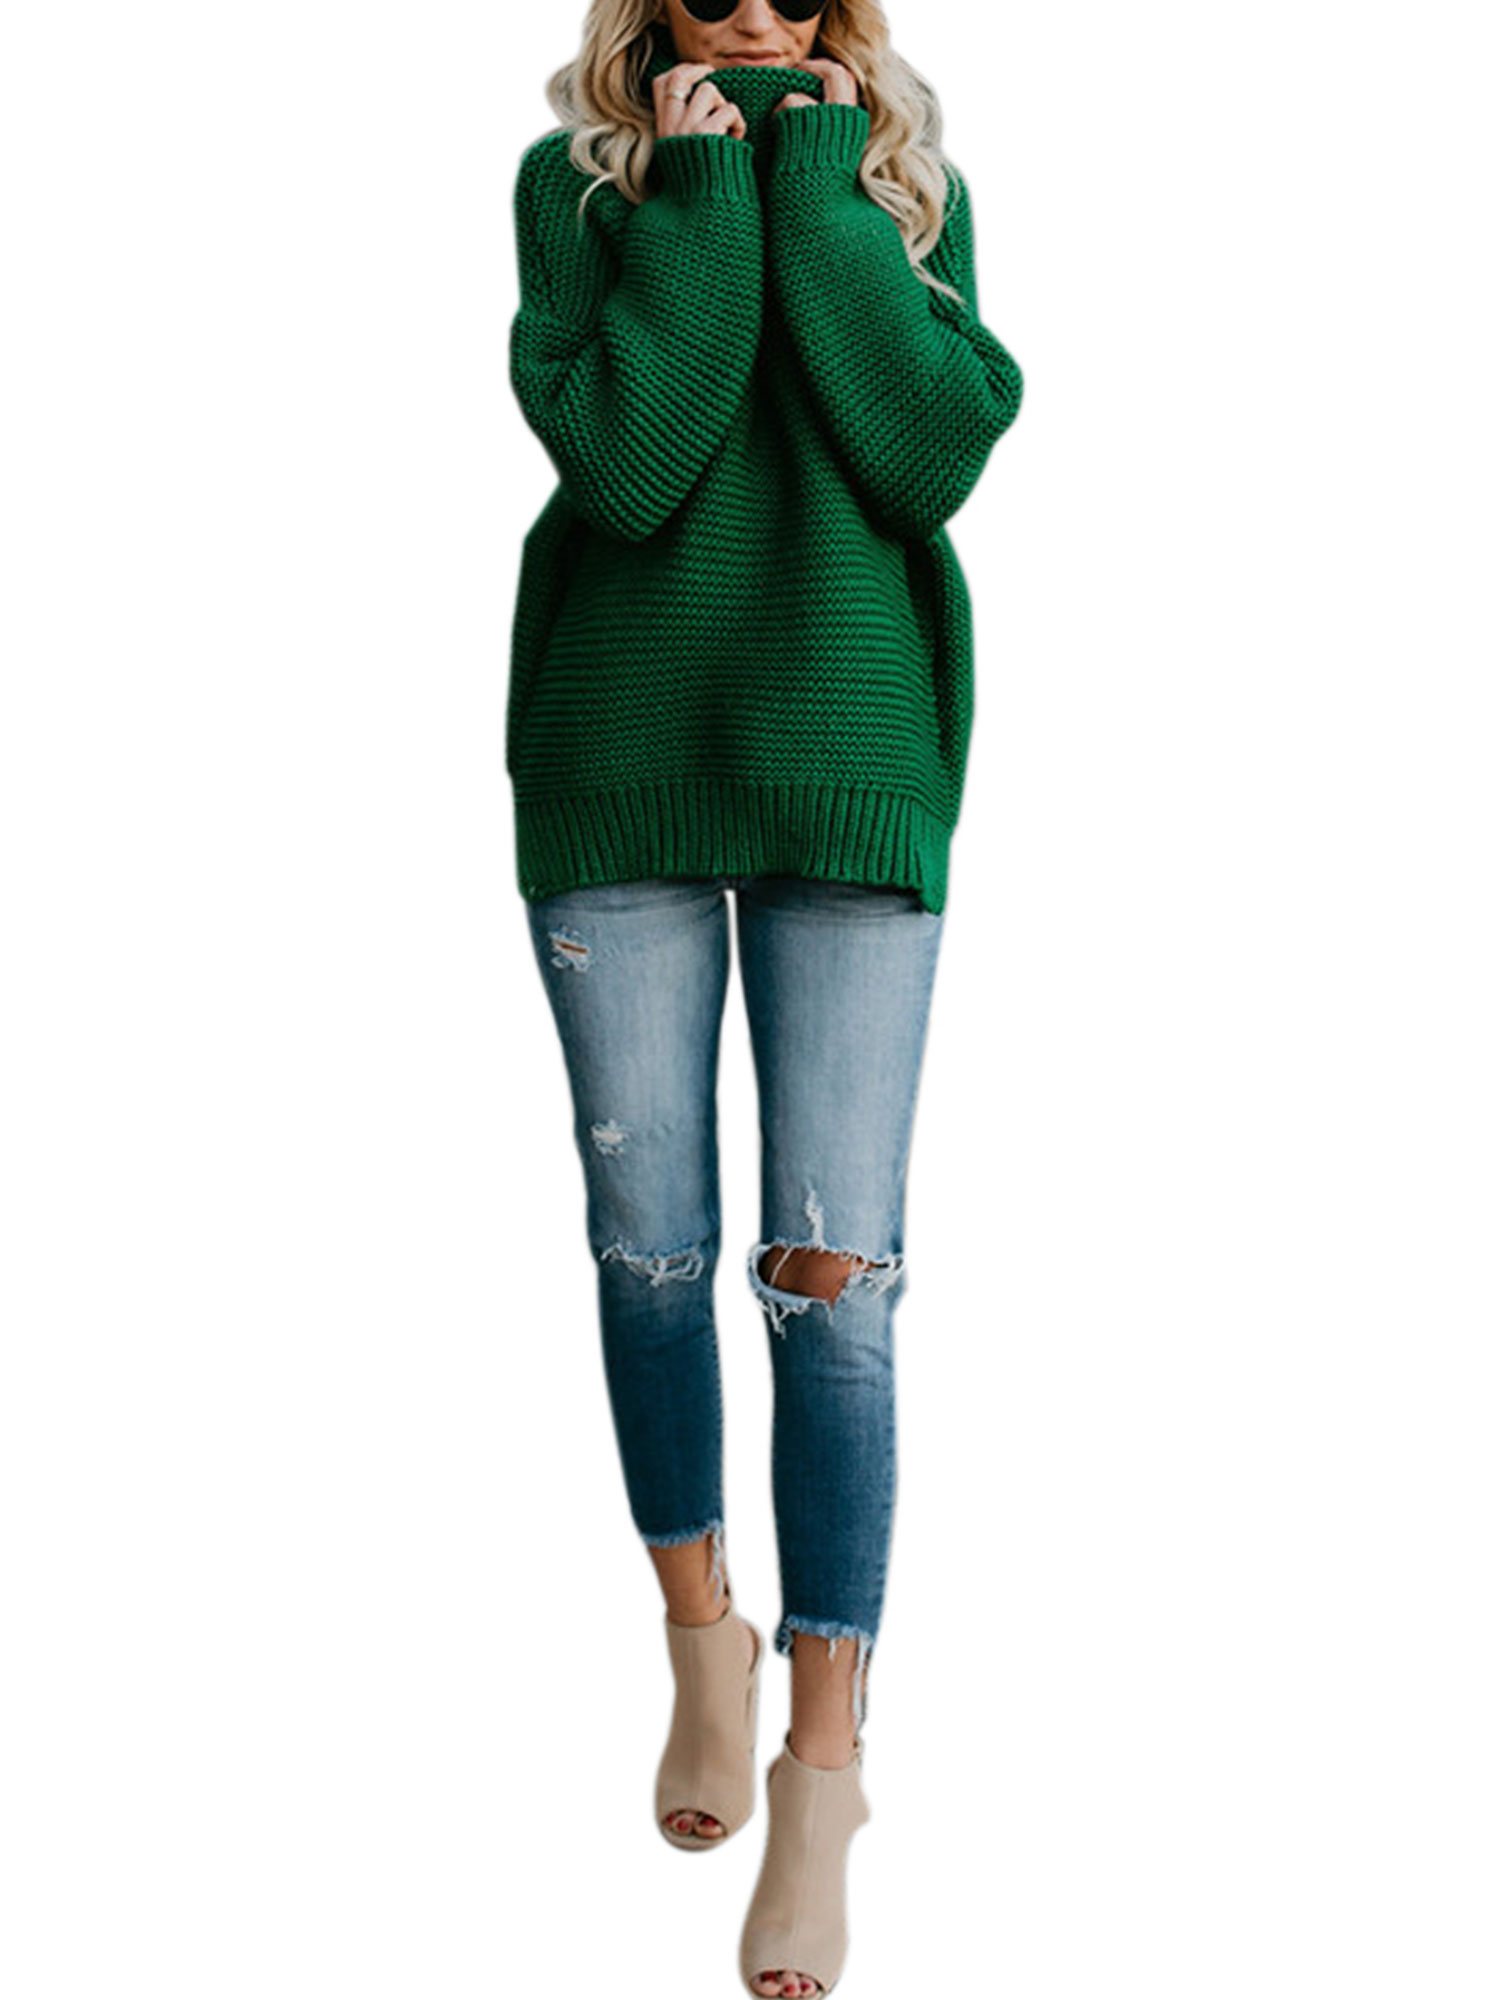 1f0c7732ef2d00 Womens Cable knit Sweaters Casual knitted Pullover High Neck Long Sleeves  Jumper Winter Autumn Knitting Coat Loose Cardigan Knitwear Outwear